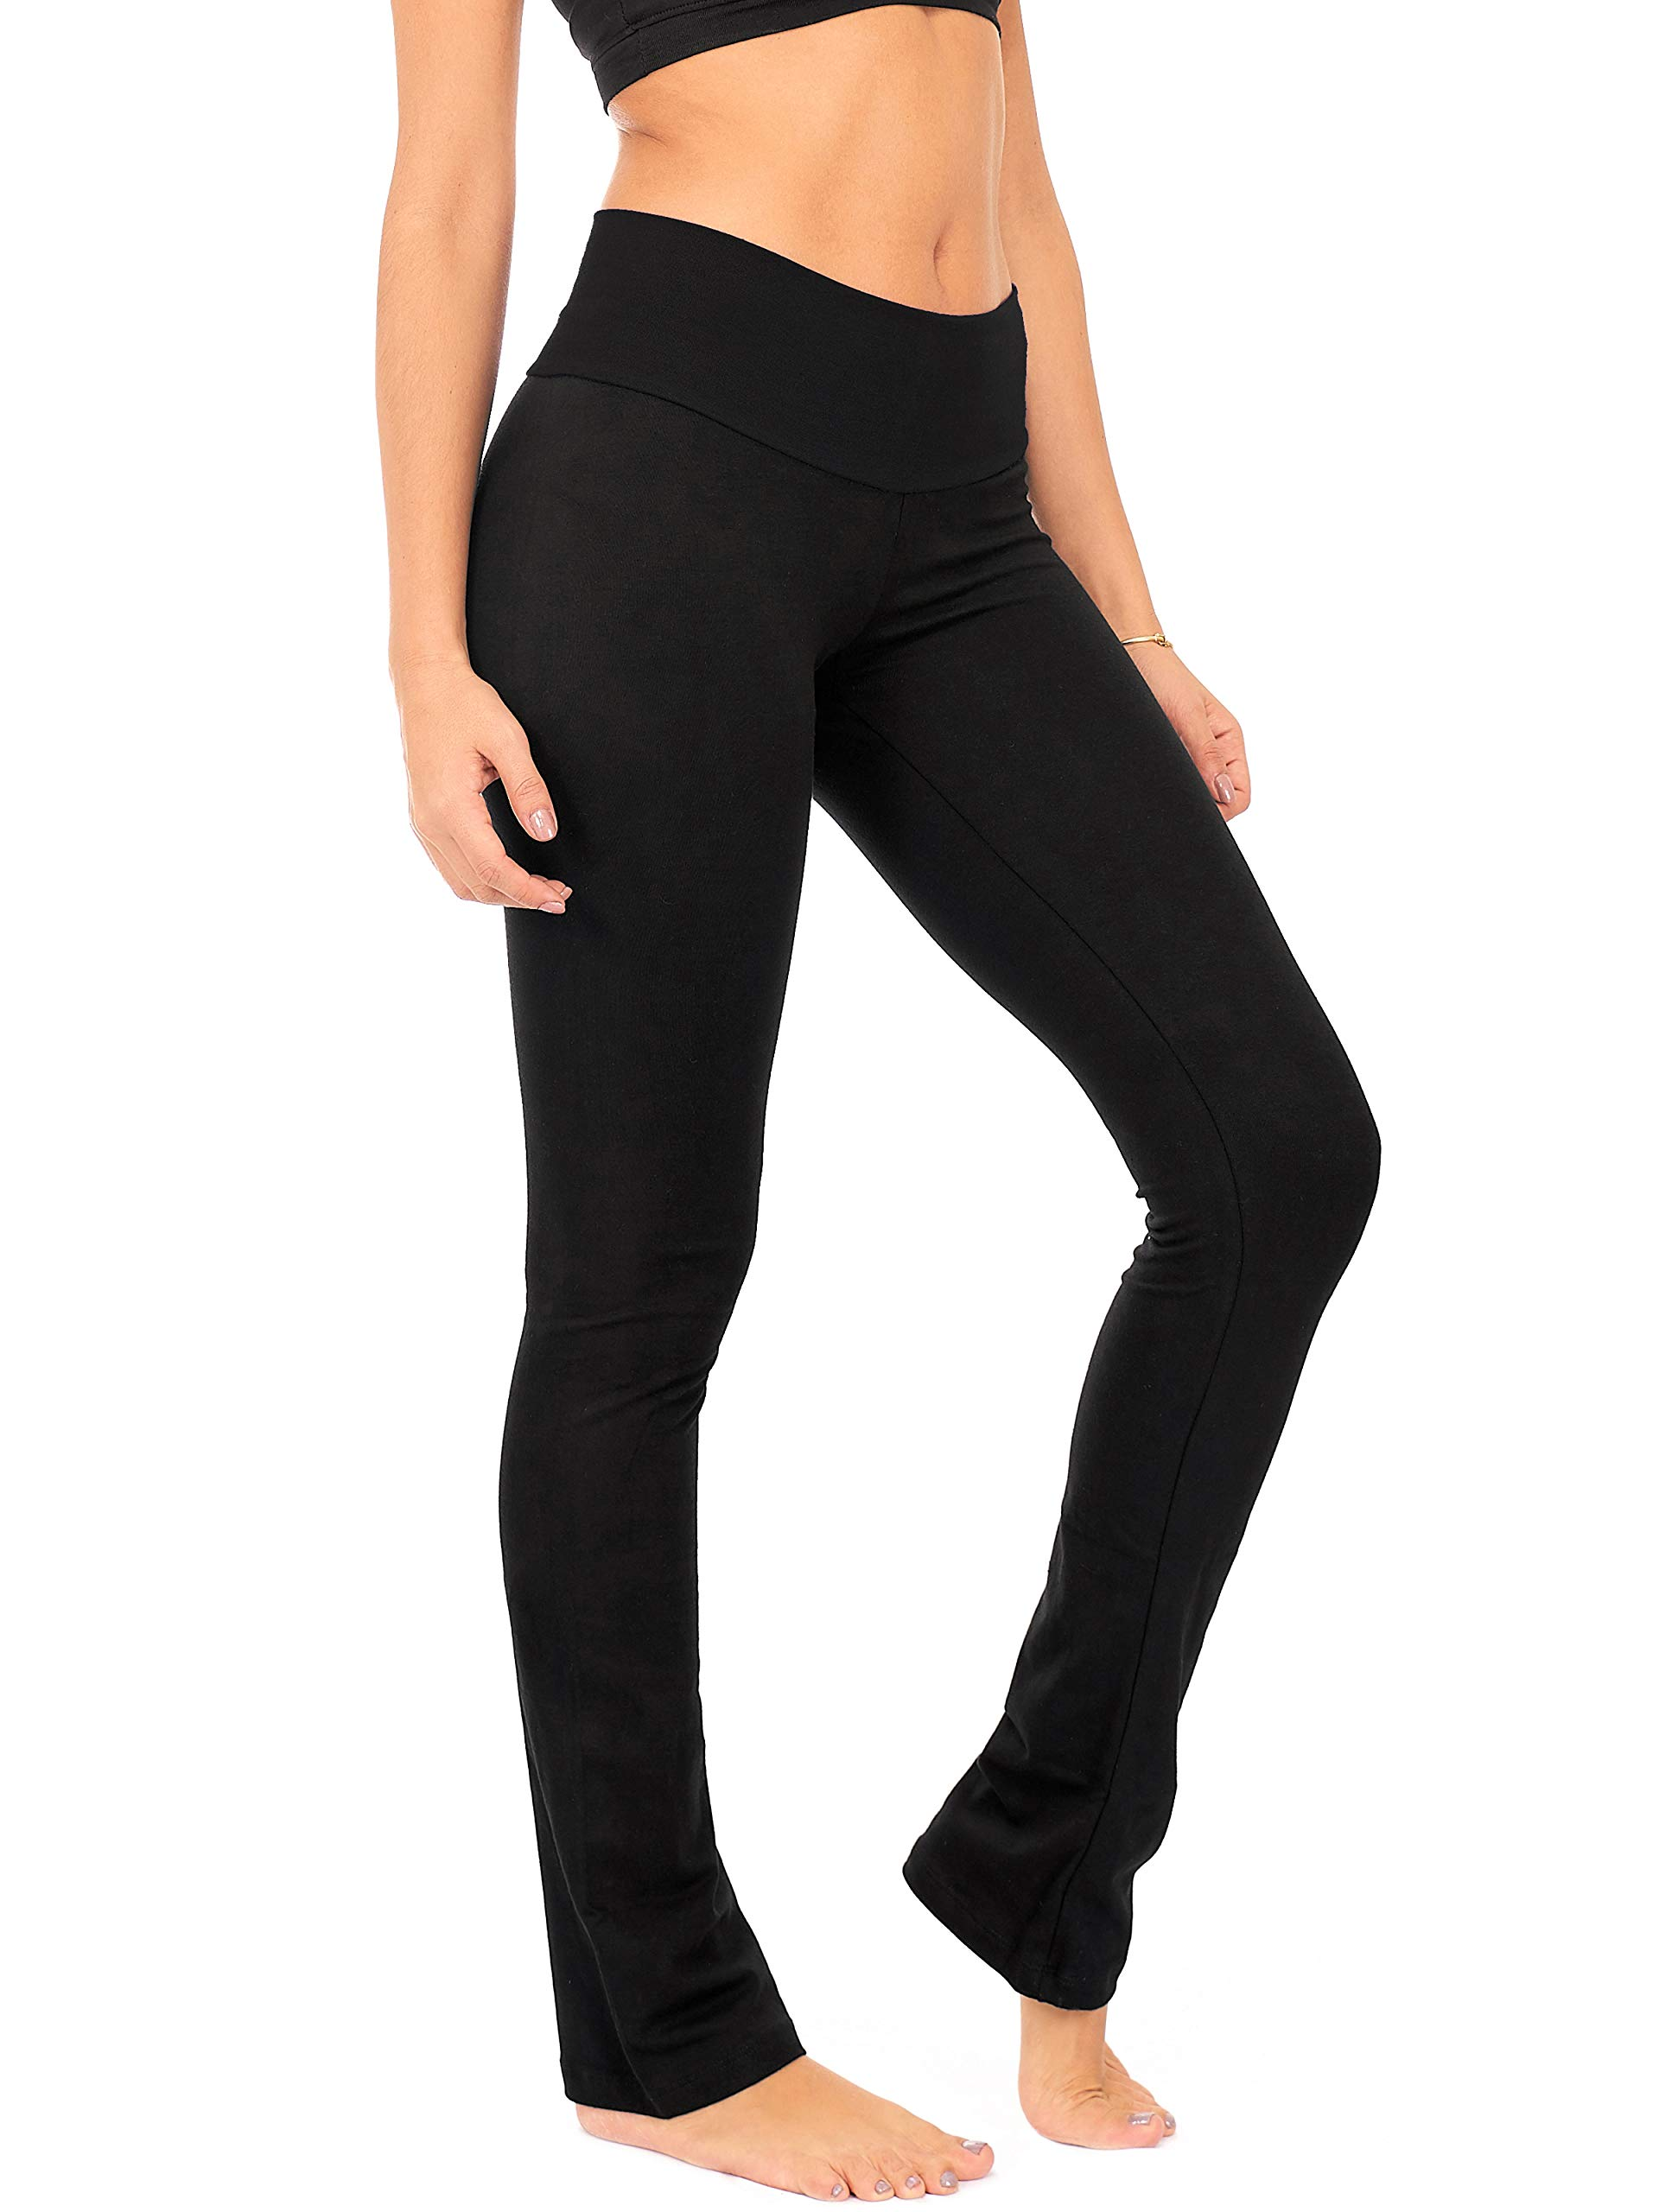 DEAR SPARKLE Bootcut Leggings for Women | Slim Look Bootleg Opaque Yoga Pants w Pocket + Plus Size (C5)